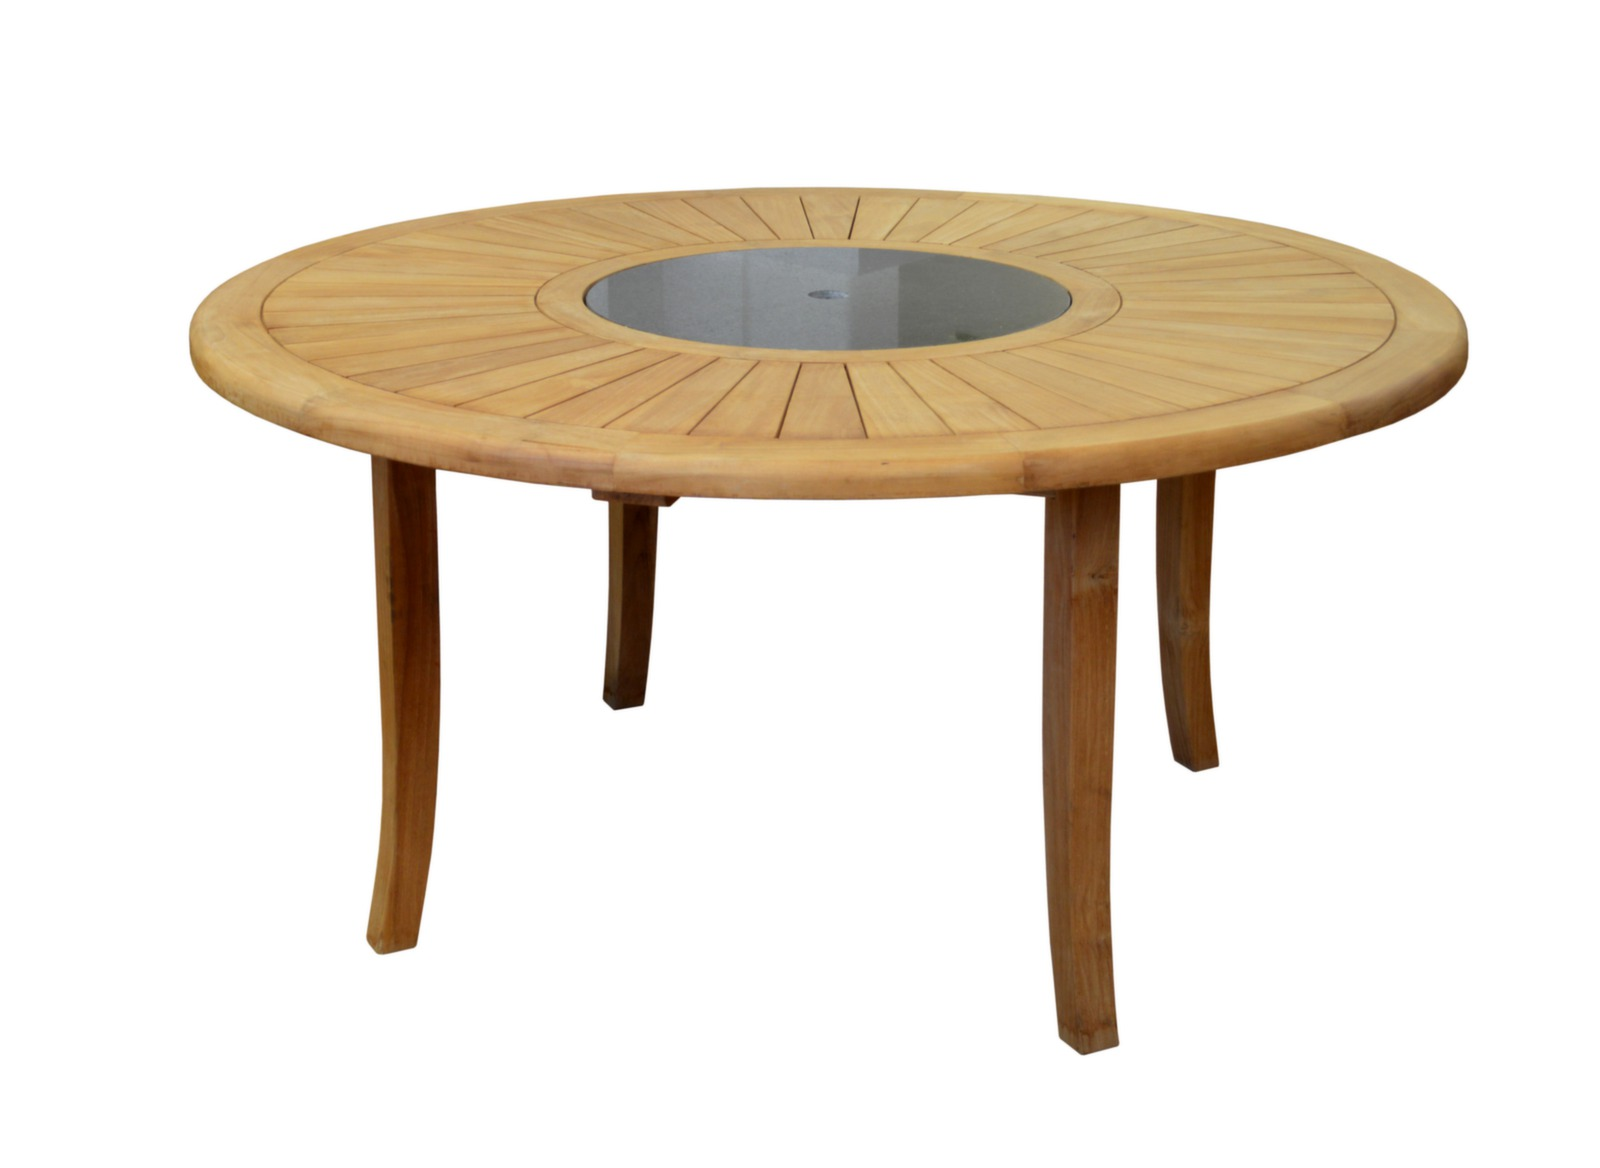 Table de jardin brehat 155 cm mobilier de jardin for Table bois salon